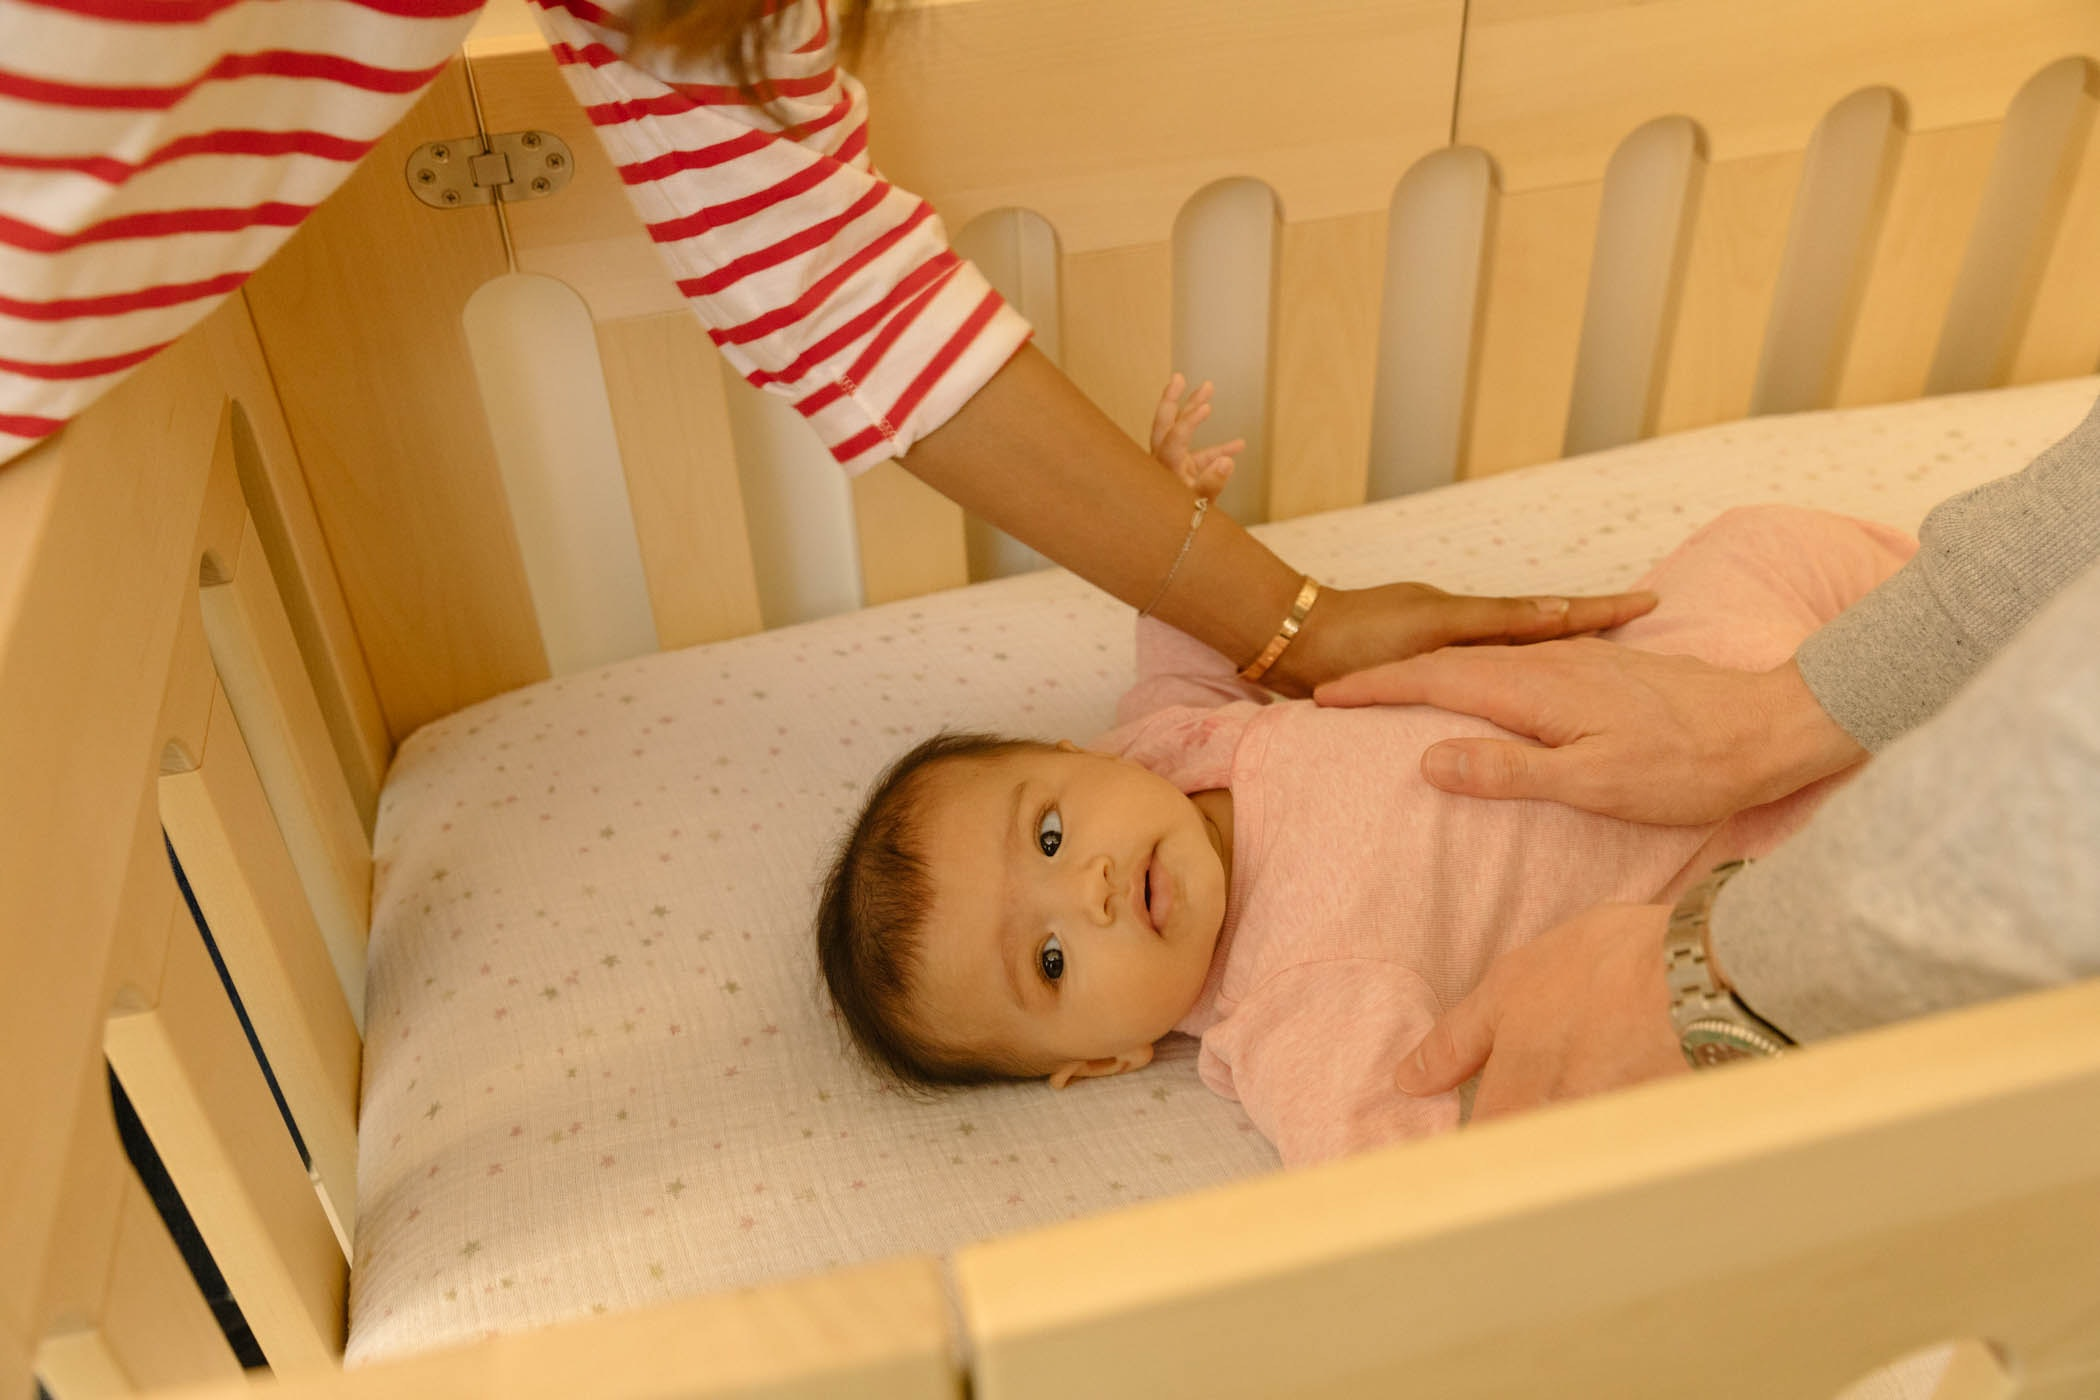 Signs and superstitions: 12 myths about newborns